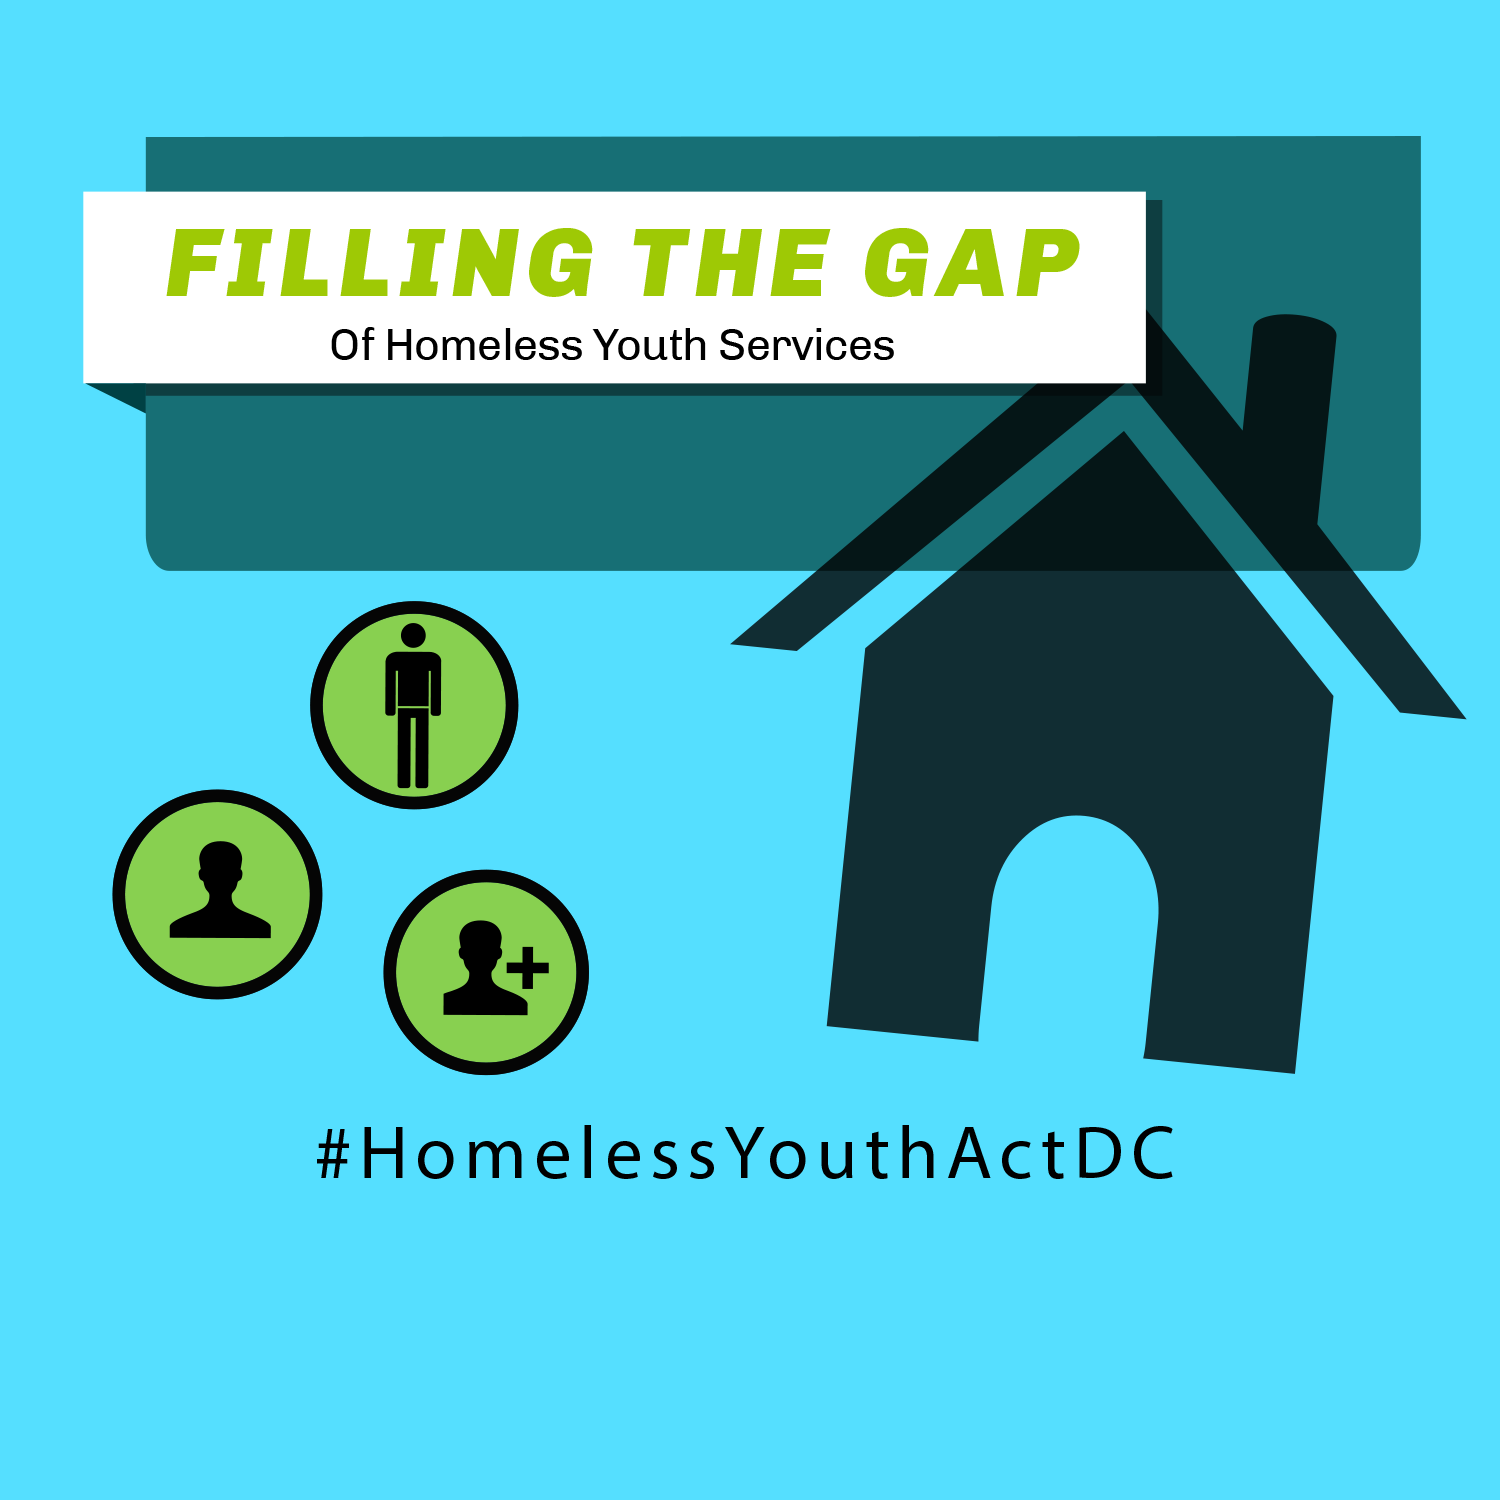 Filling the Gap of Homeless Youth Services Infographic